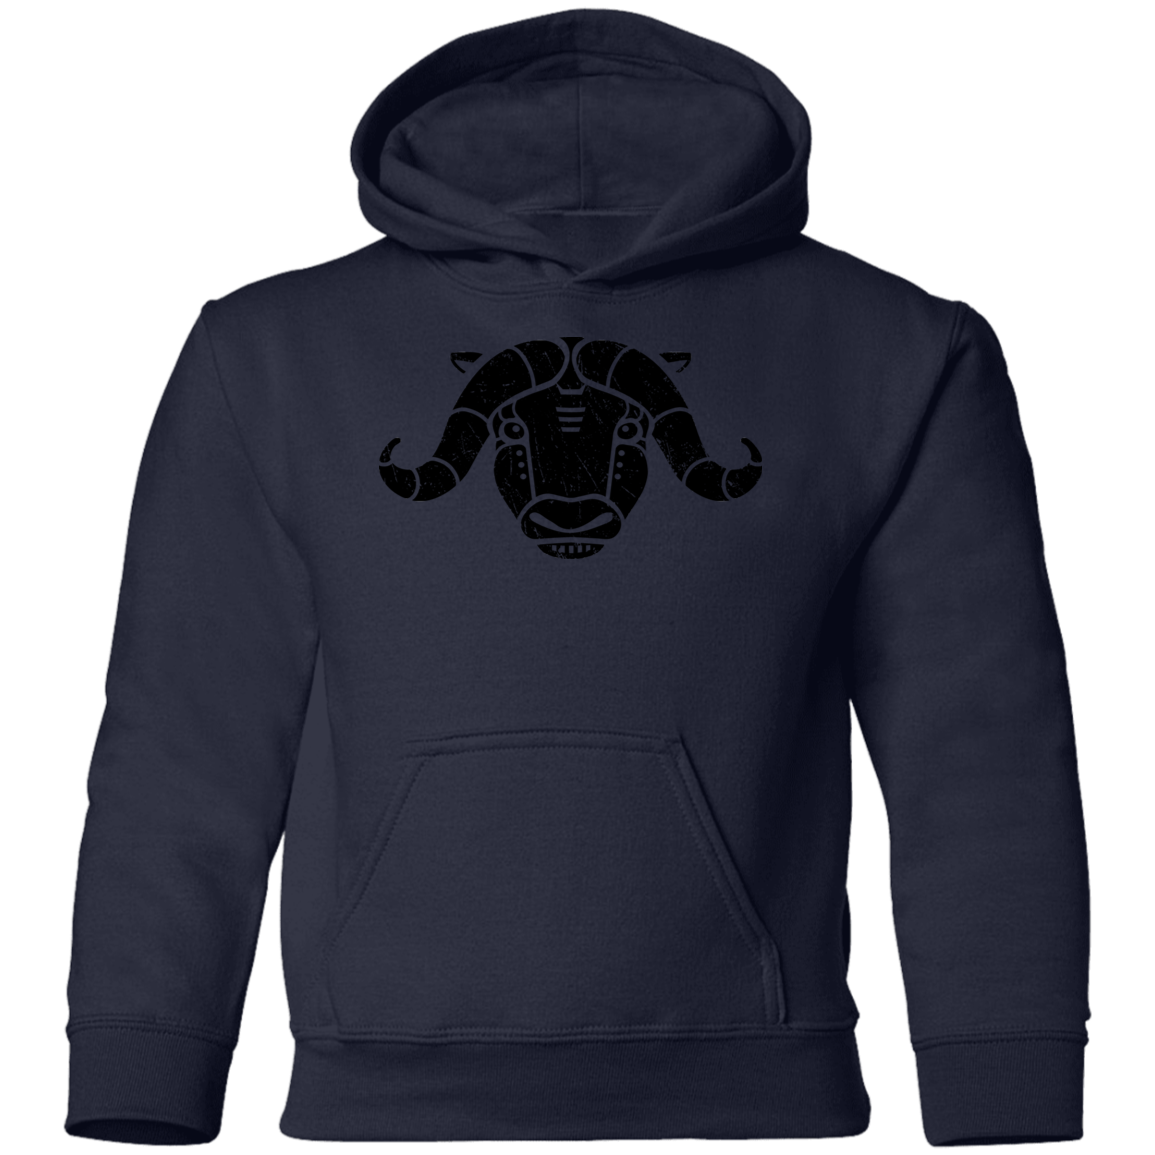 Black Distressed Emblem Hoodies for Kids (Musk Ox/Moxie)